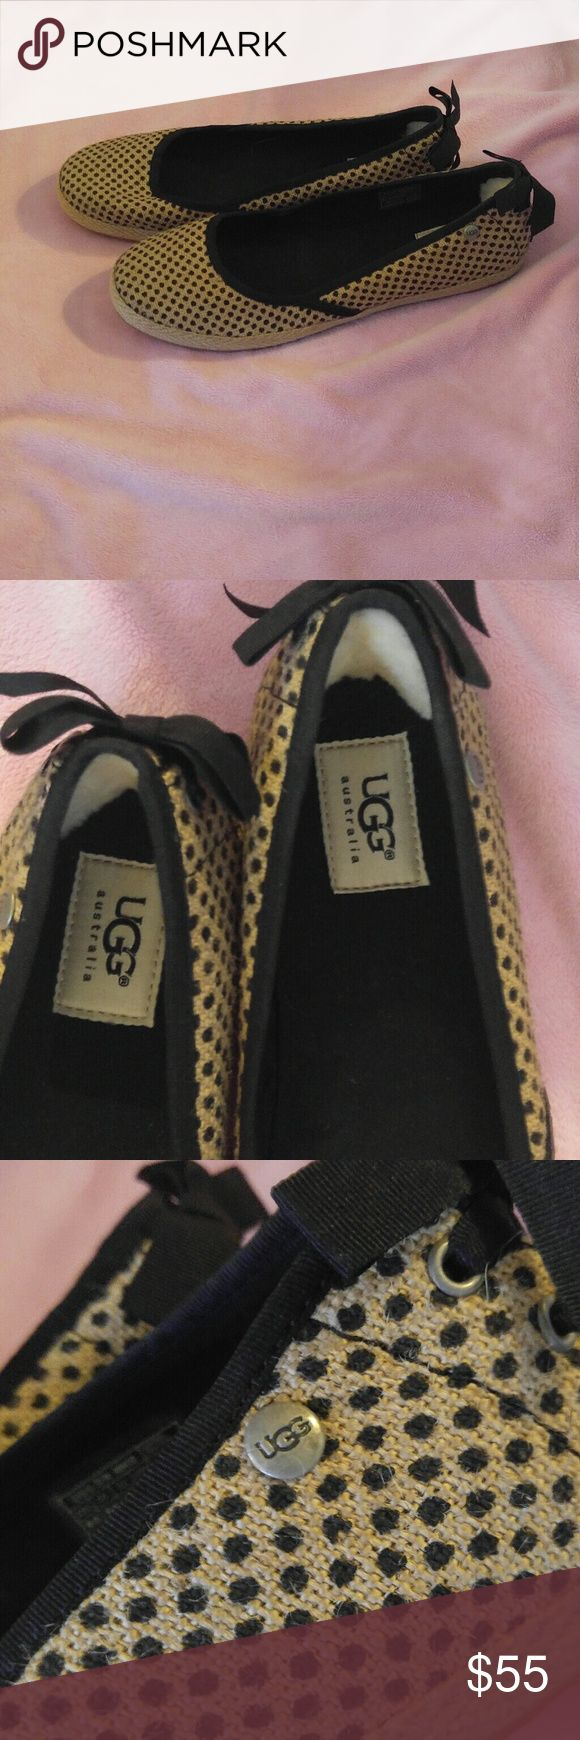 UGG slip ons Brad New UGG shoes. SIZE 9.5 women's excellent condition UGG Shoes Flats & Loafers